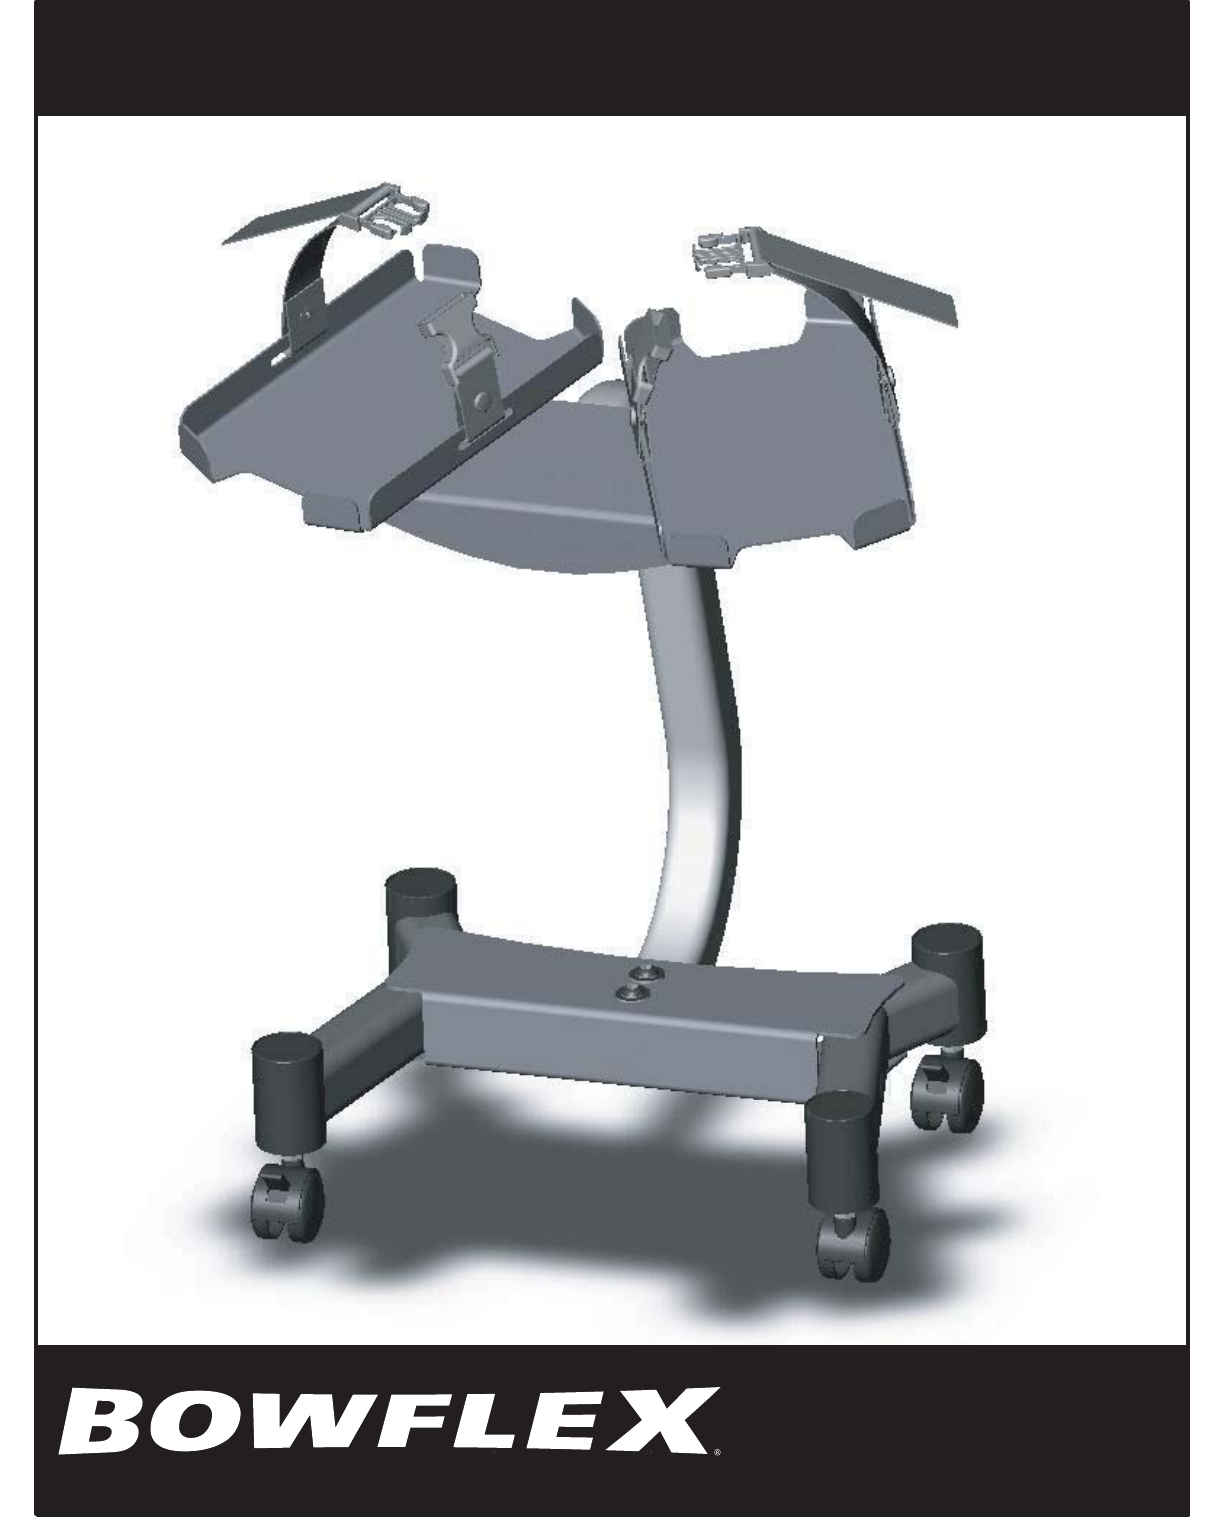 bowflex ultimate assembly instructions